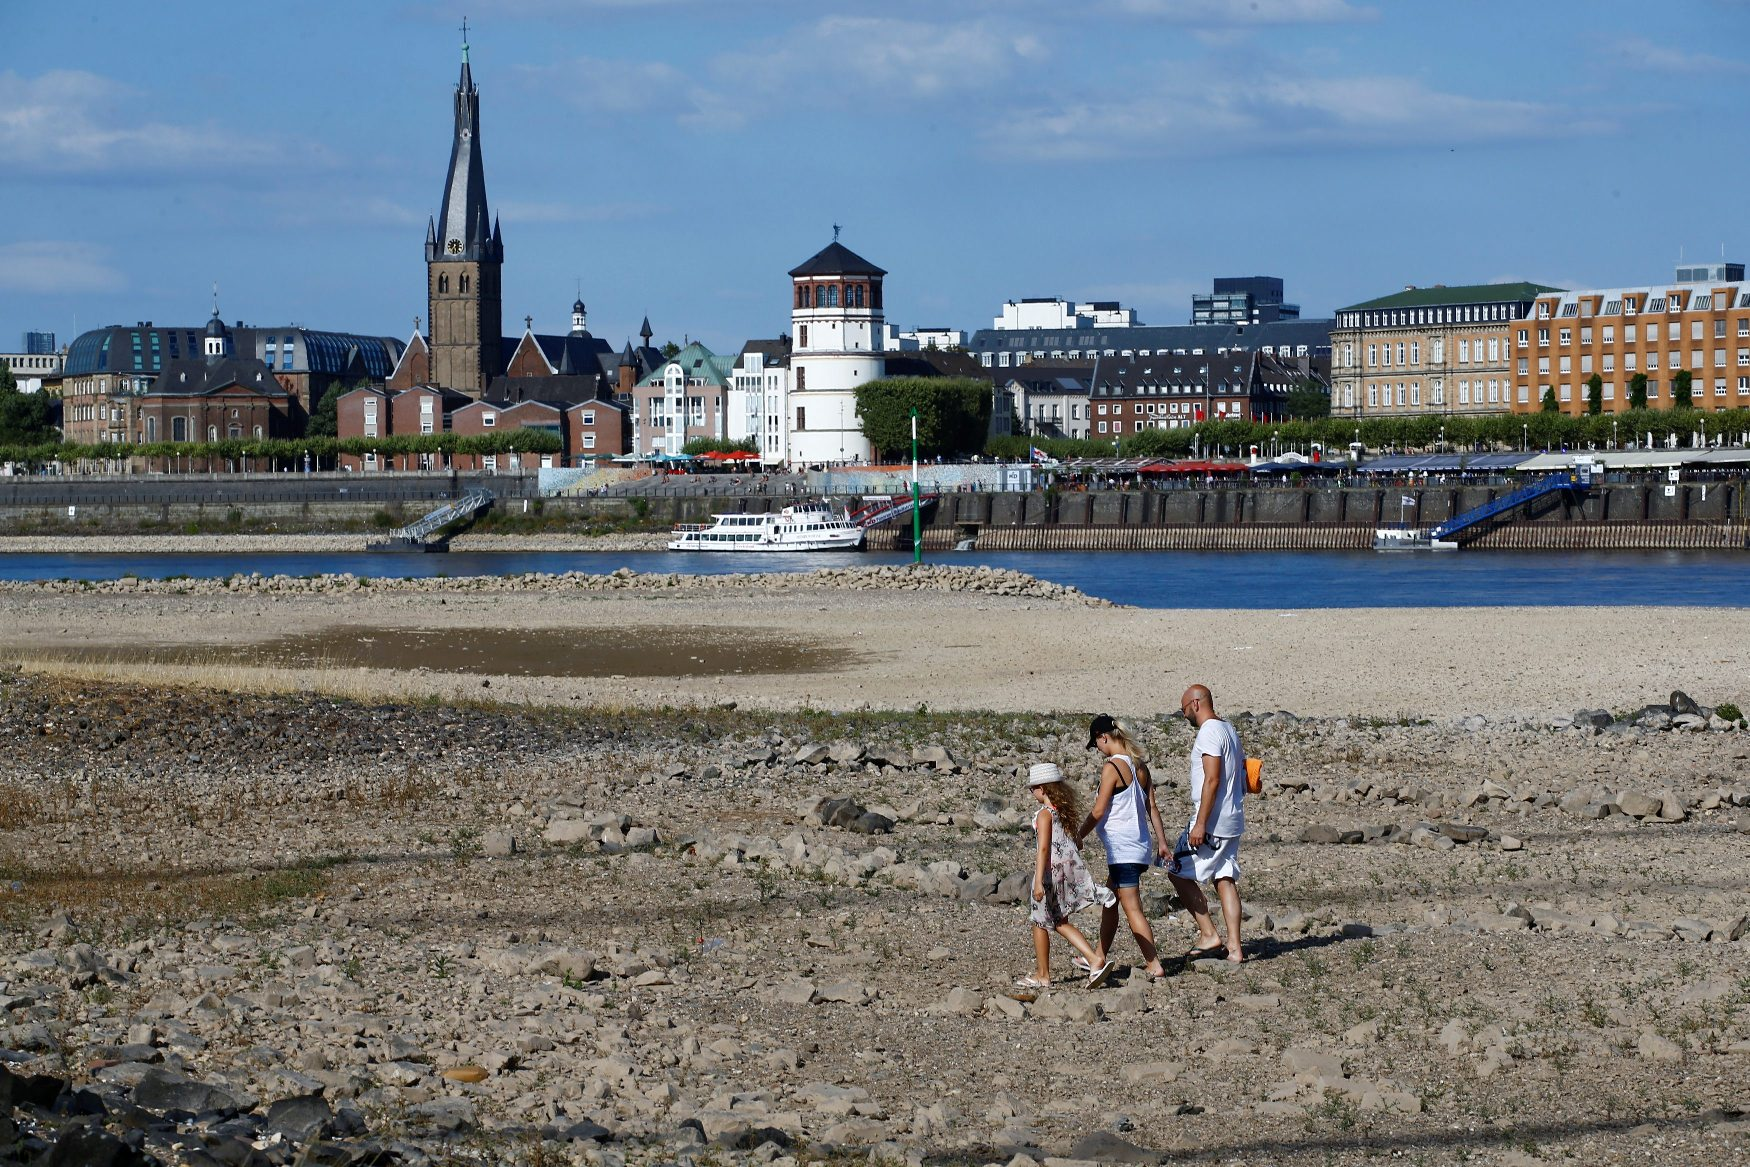 A family walks through the partially dried riverbed of Europe's most important waterway, Rhine in front of the skyline of Dusseldorf, Germany, July 31, 2018. Water levels remain low as a drought and heatwave continues and freight vessels cannot sail fully loaded on the river. REUTERS/Wolfgang Rattay